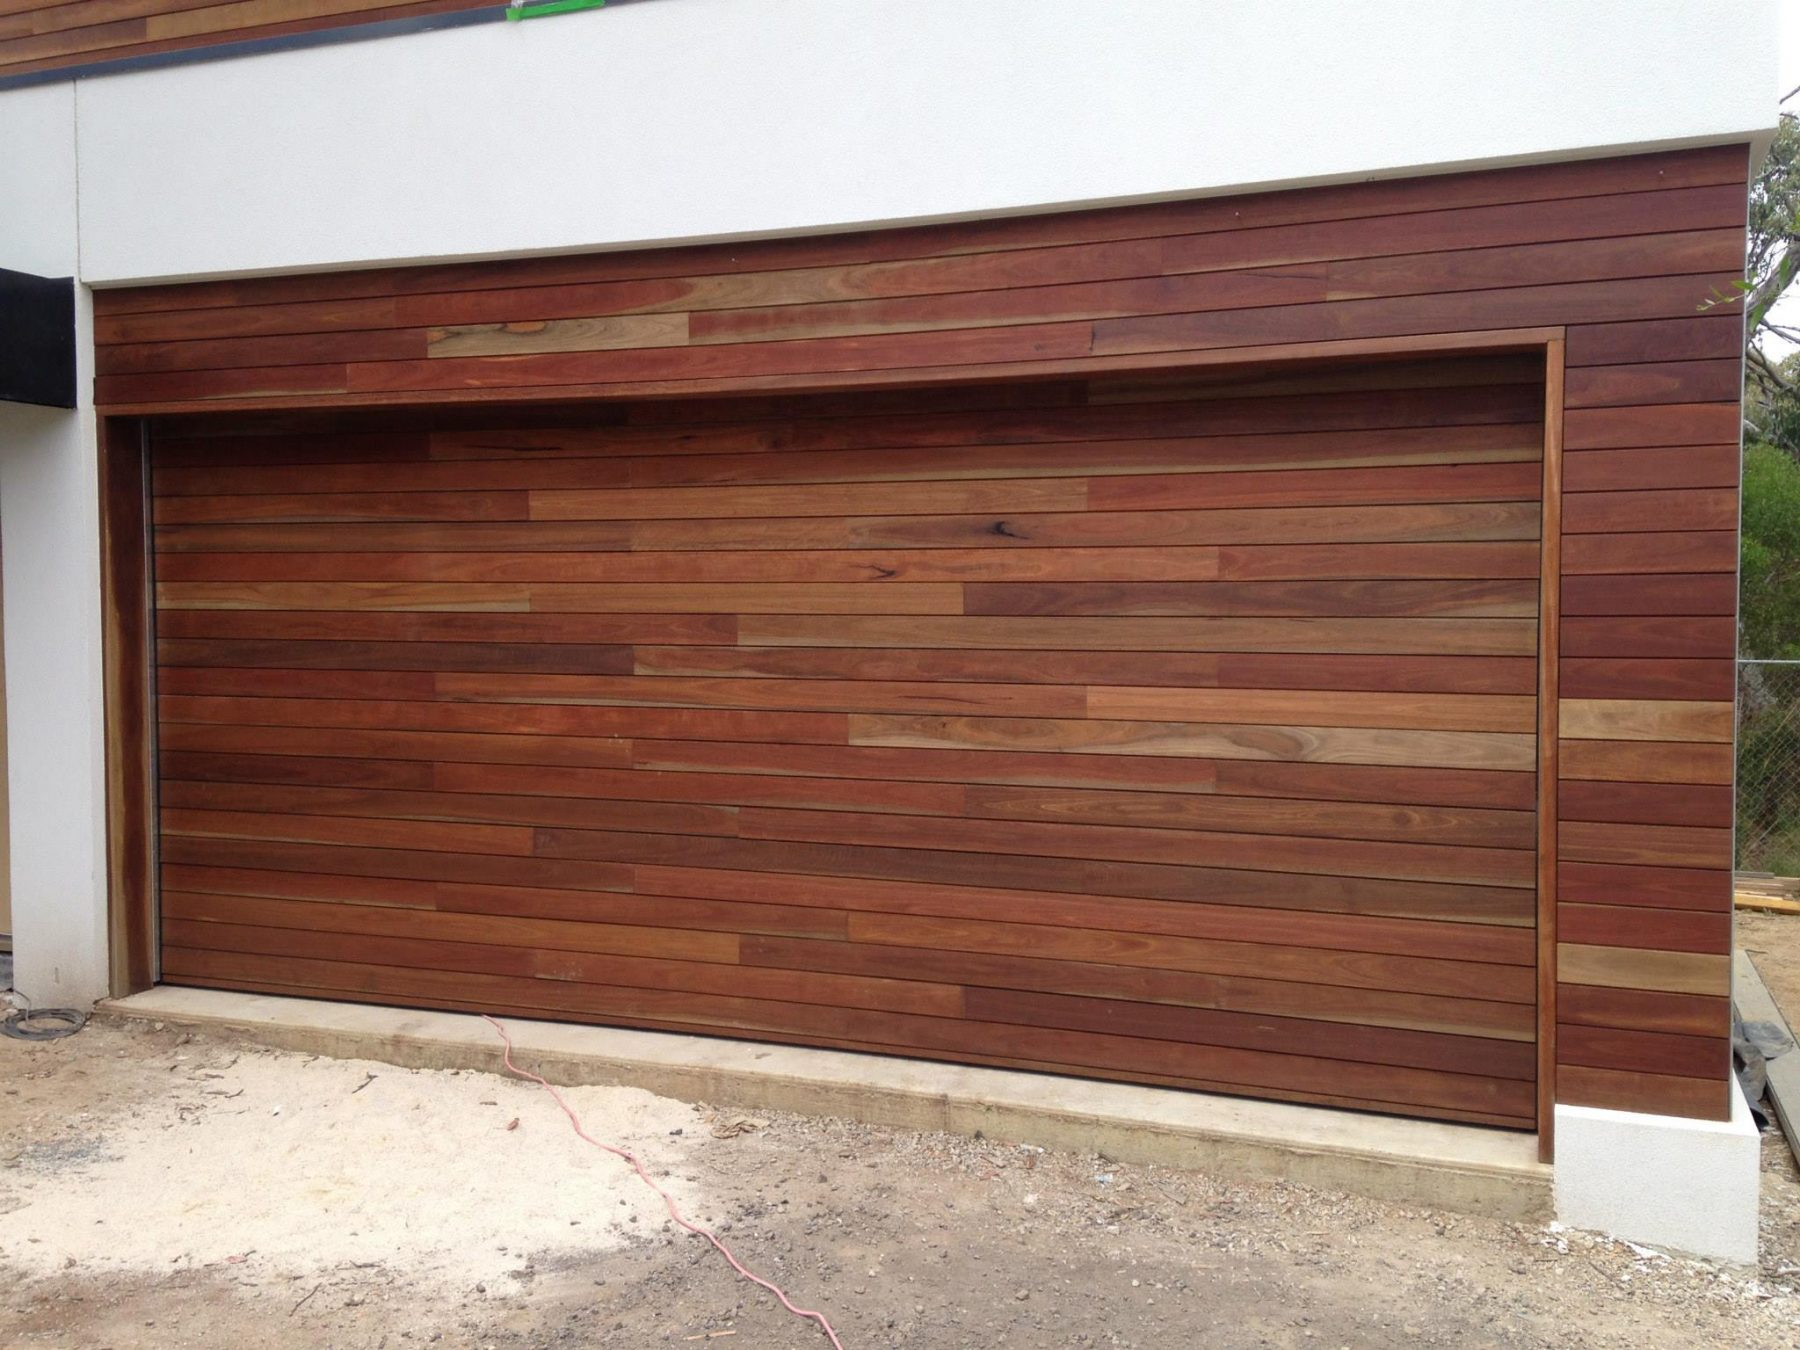 Spotted Gum Counterweight Garage Door